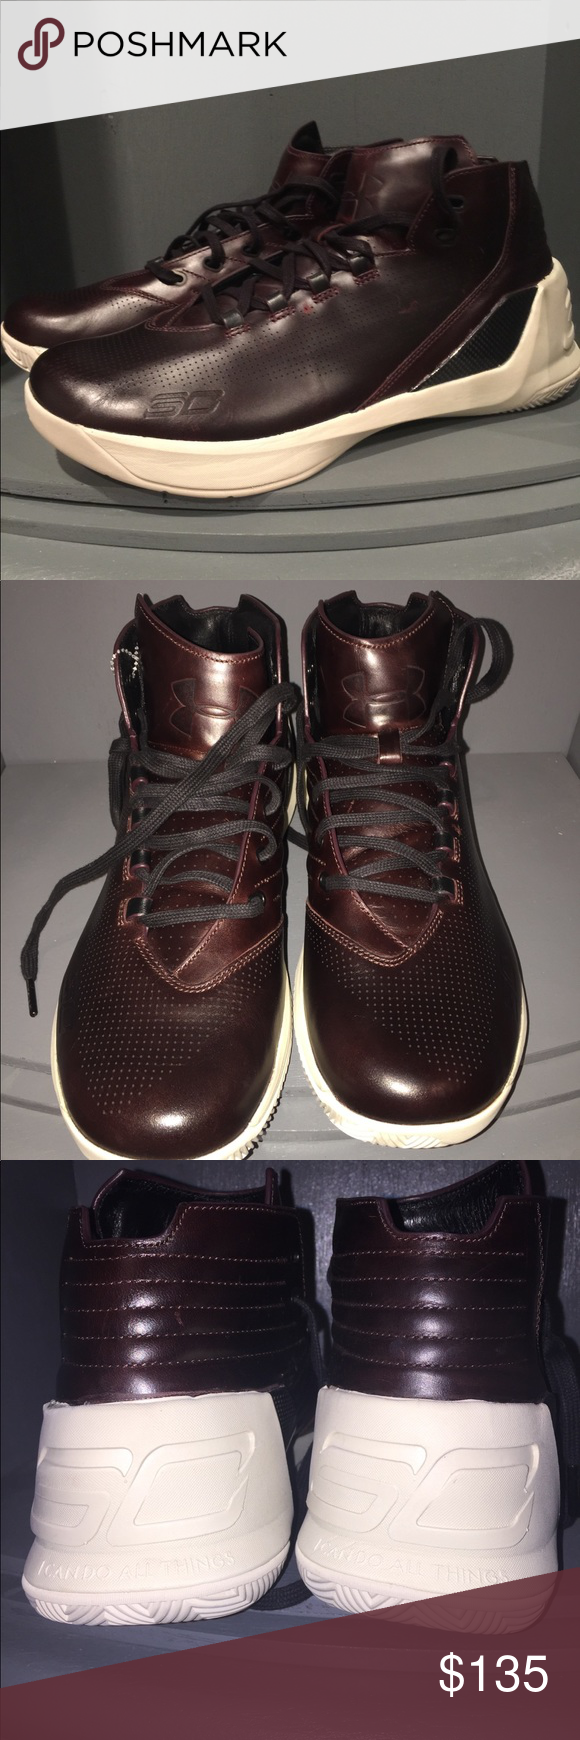 d5c6a06fb212 Under Armour Curry 3s Limited Edition 1299661-945 Under Armour Curry 3 Lux  Limited Edition Oxblood Leather 1299661-945. New without box Under Armour  Shoes ...